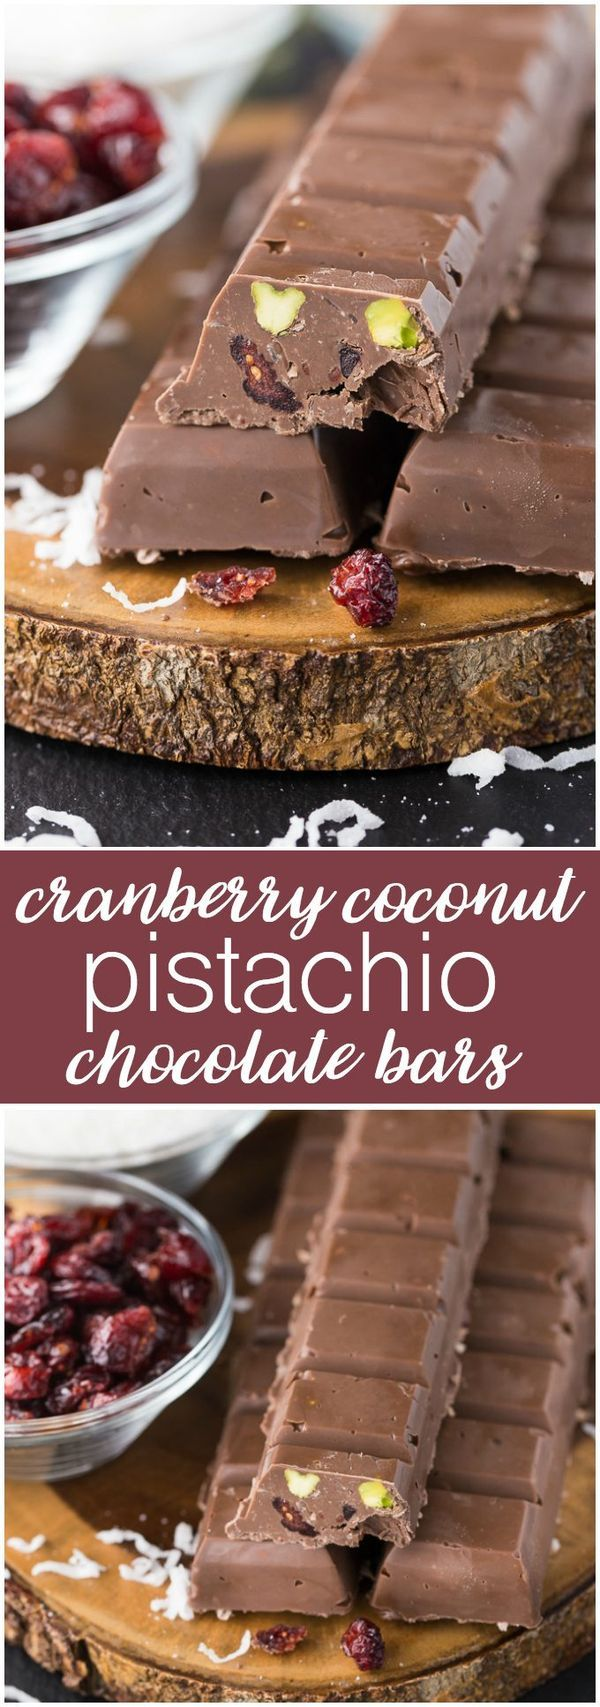 Cranberry Coconut Pistachio Chocolate Bars Recipe - Rich and festive homemade chocolate bars perfect for holiday gift giving!